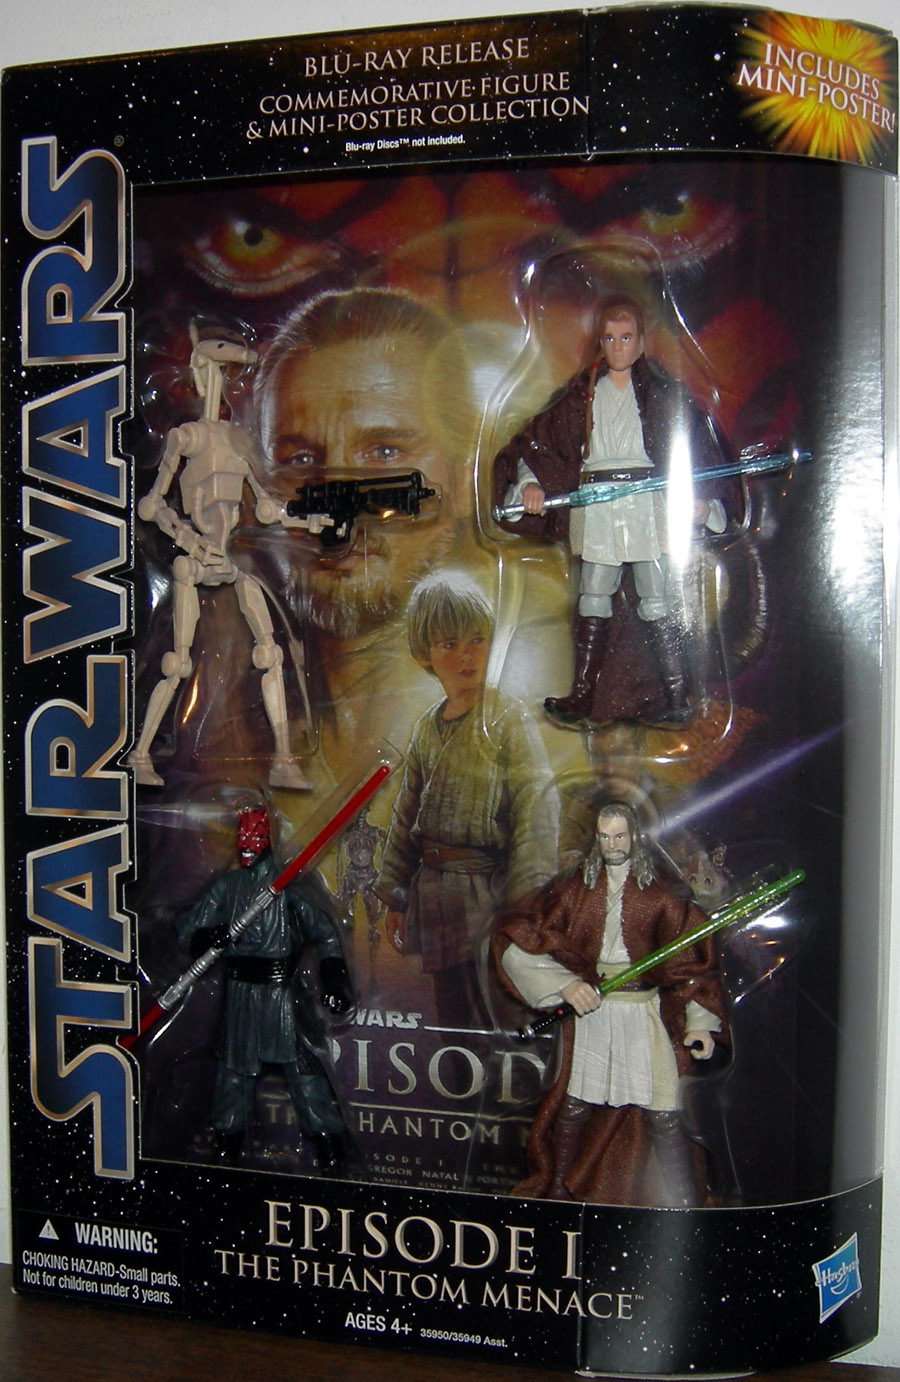 The Phantom Menace Toys : Star wars blu ray release commemorative action figures